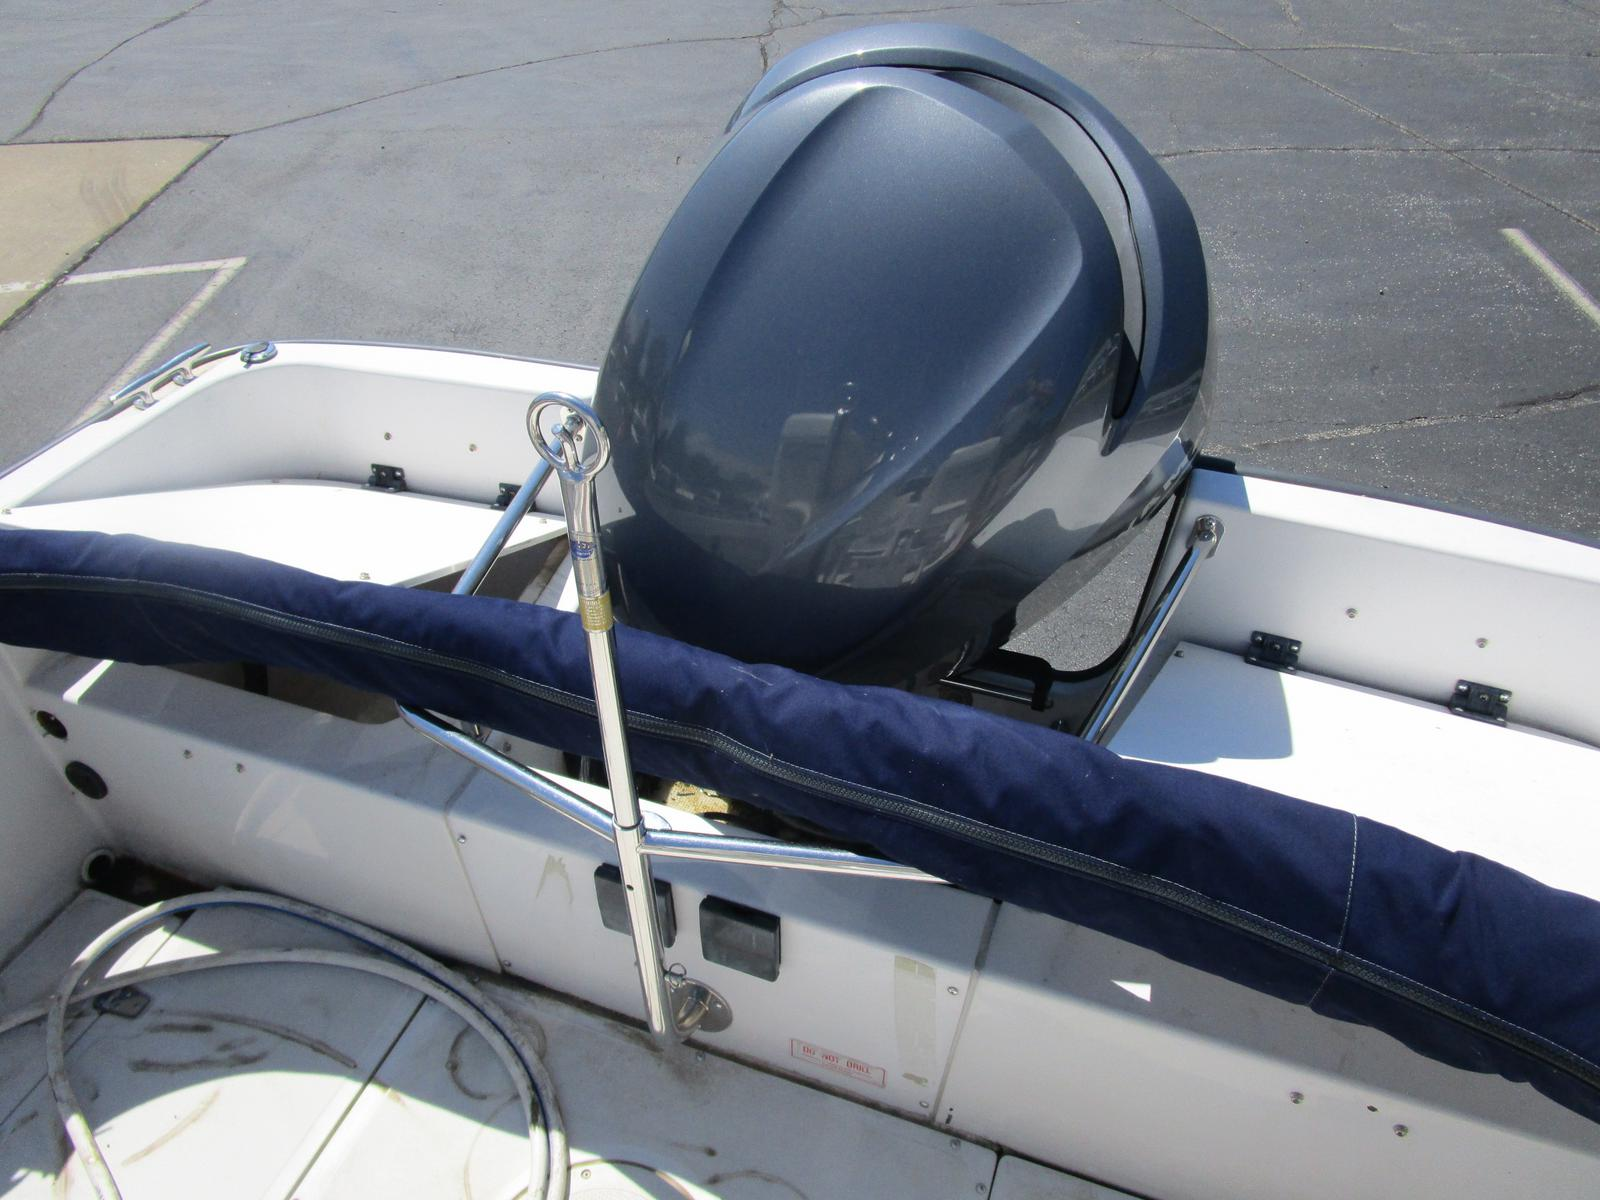 1996 Boston Whaler boat for sale, model of the boat is 190 Outrage & Image # 9 of 9